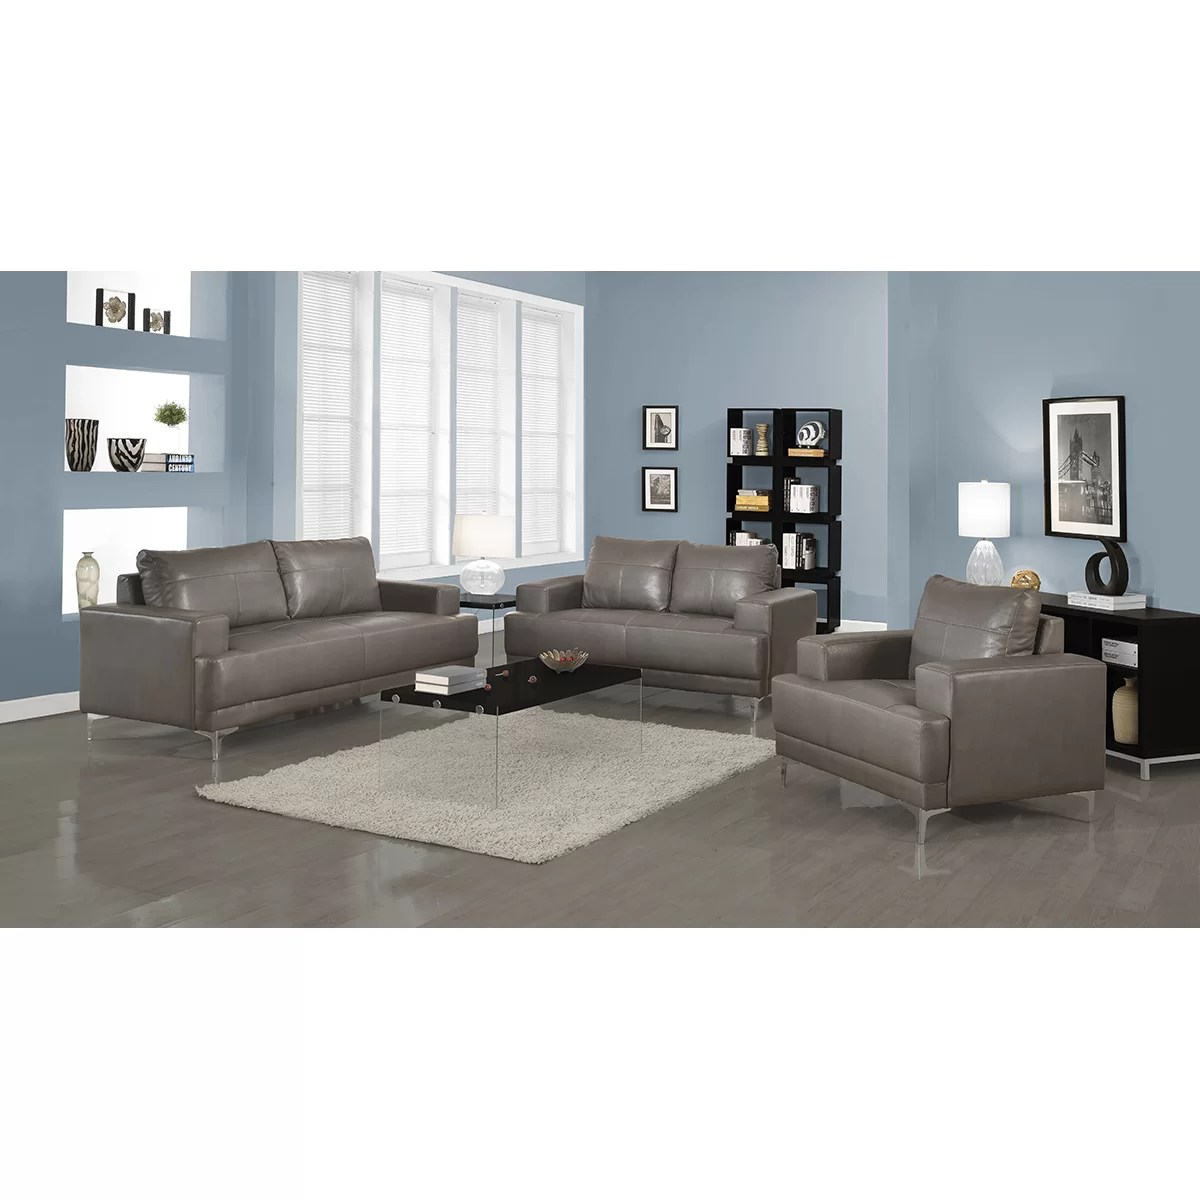 Monarch Sectional Sofa Reviews Hpricot Com  sc 1 st  Centerfieldbar.com : monarch sectional - Sectionals, Sofas & Couches